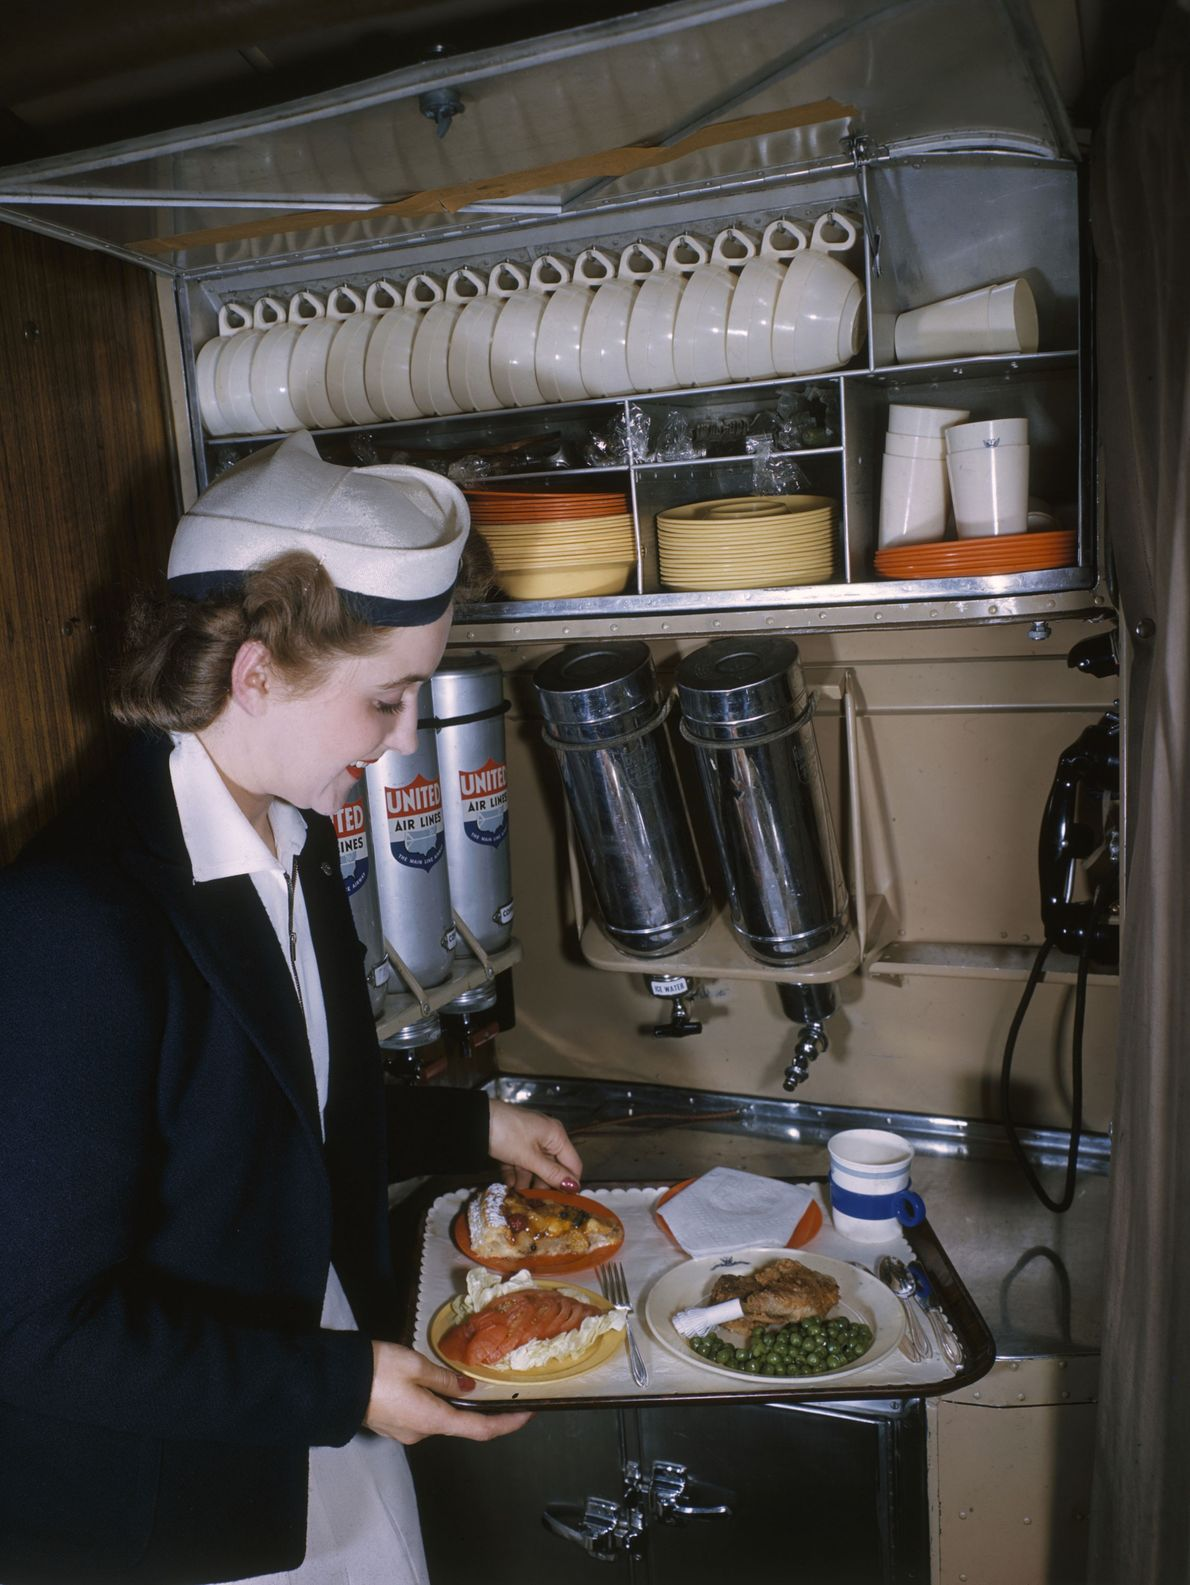 A stewardess prepares an in-flight meal, complete with dessert.